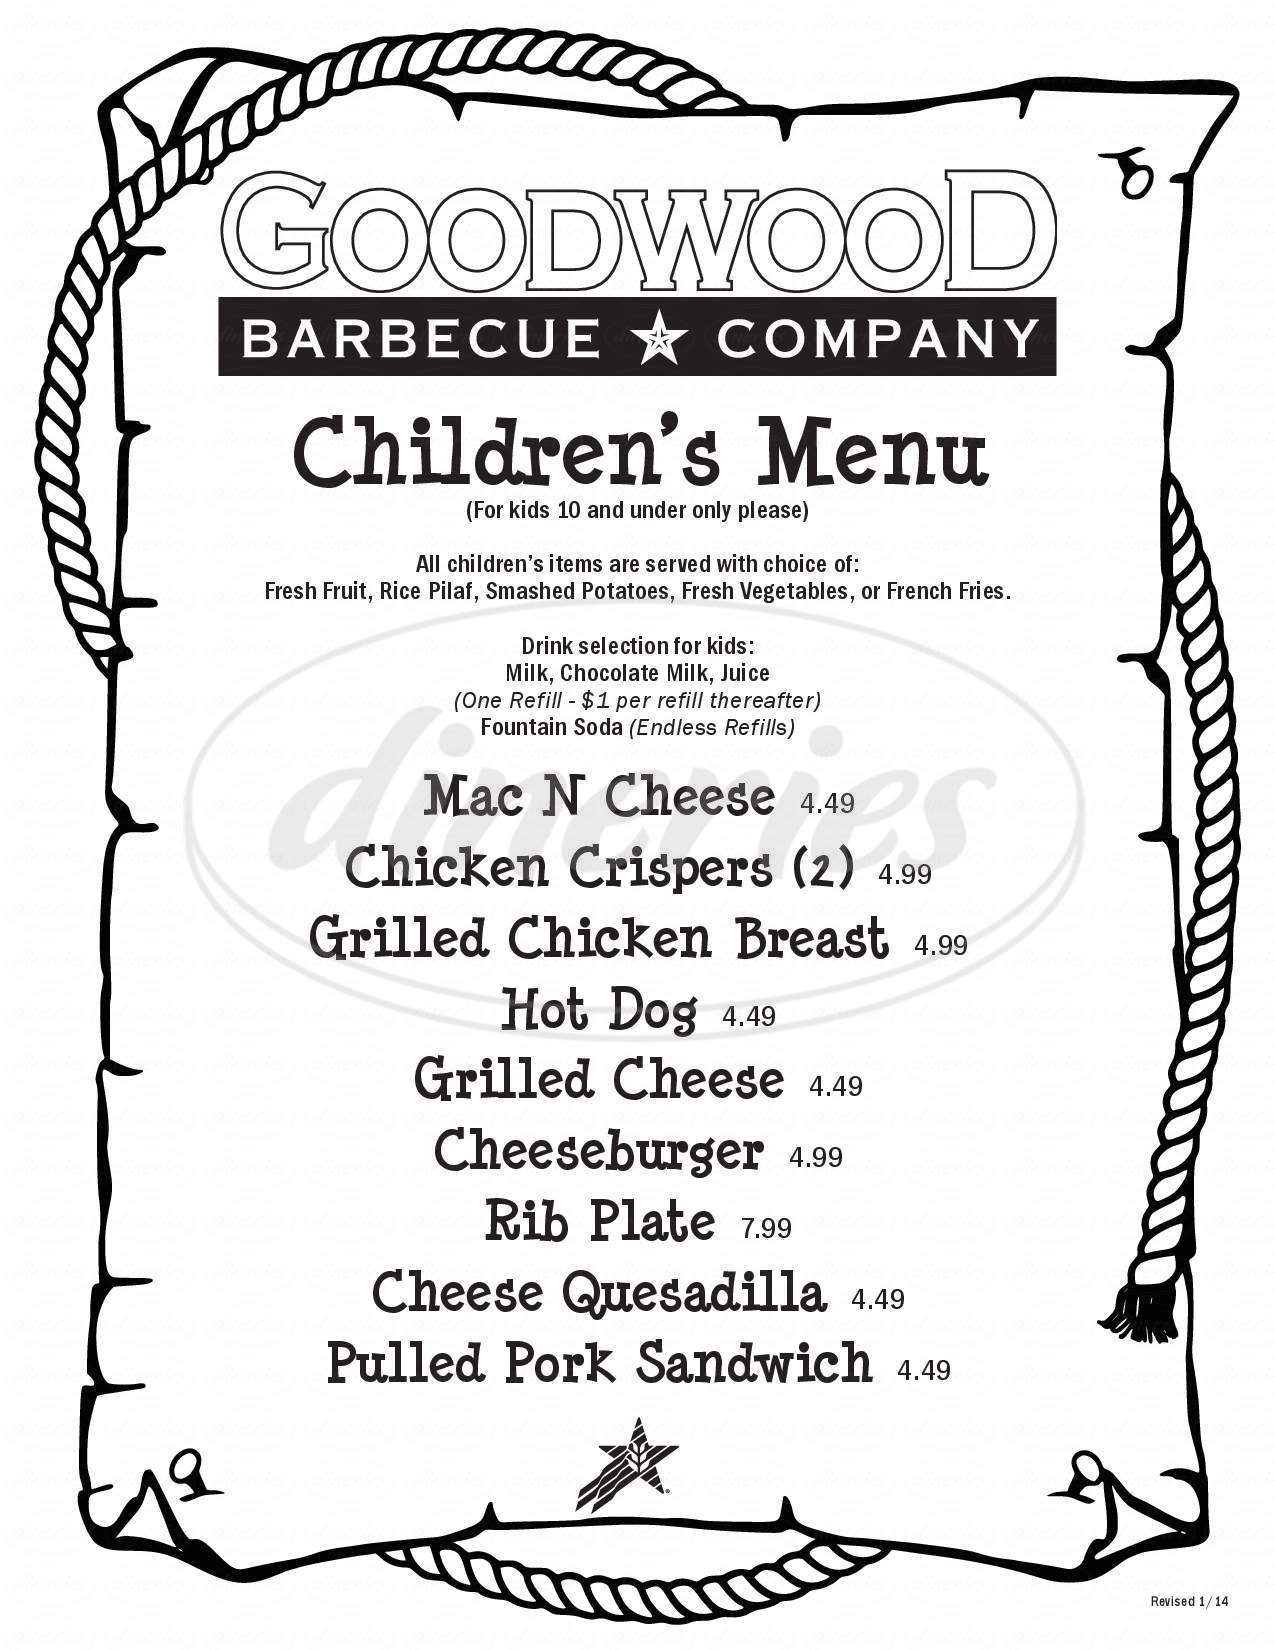 menu for Goodwood Barbecue Company